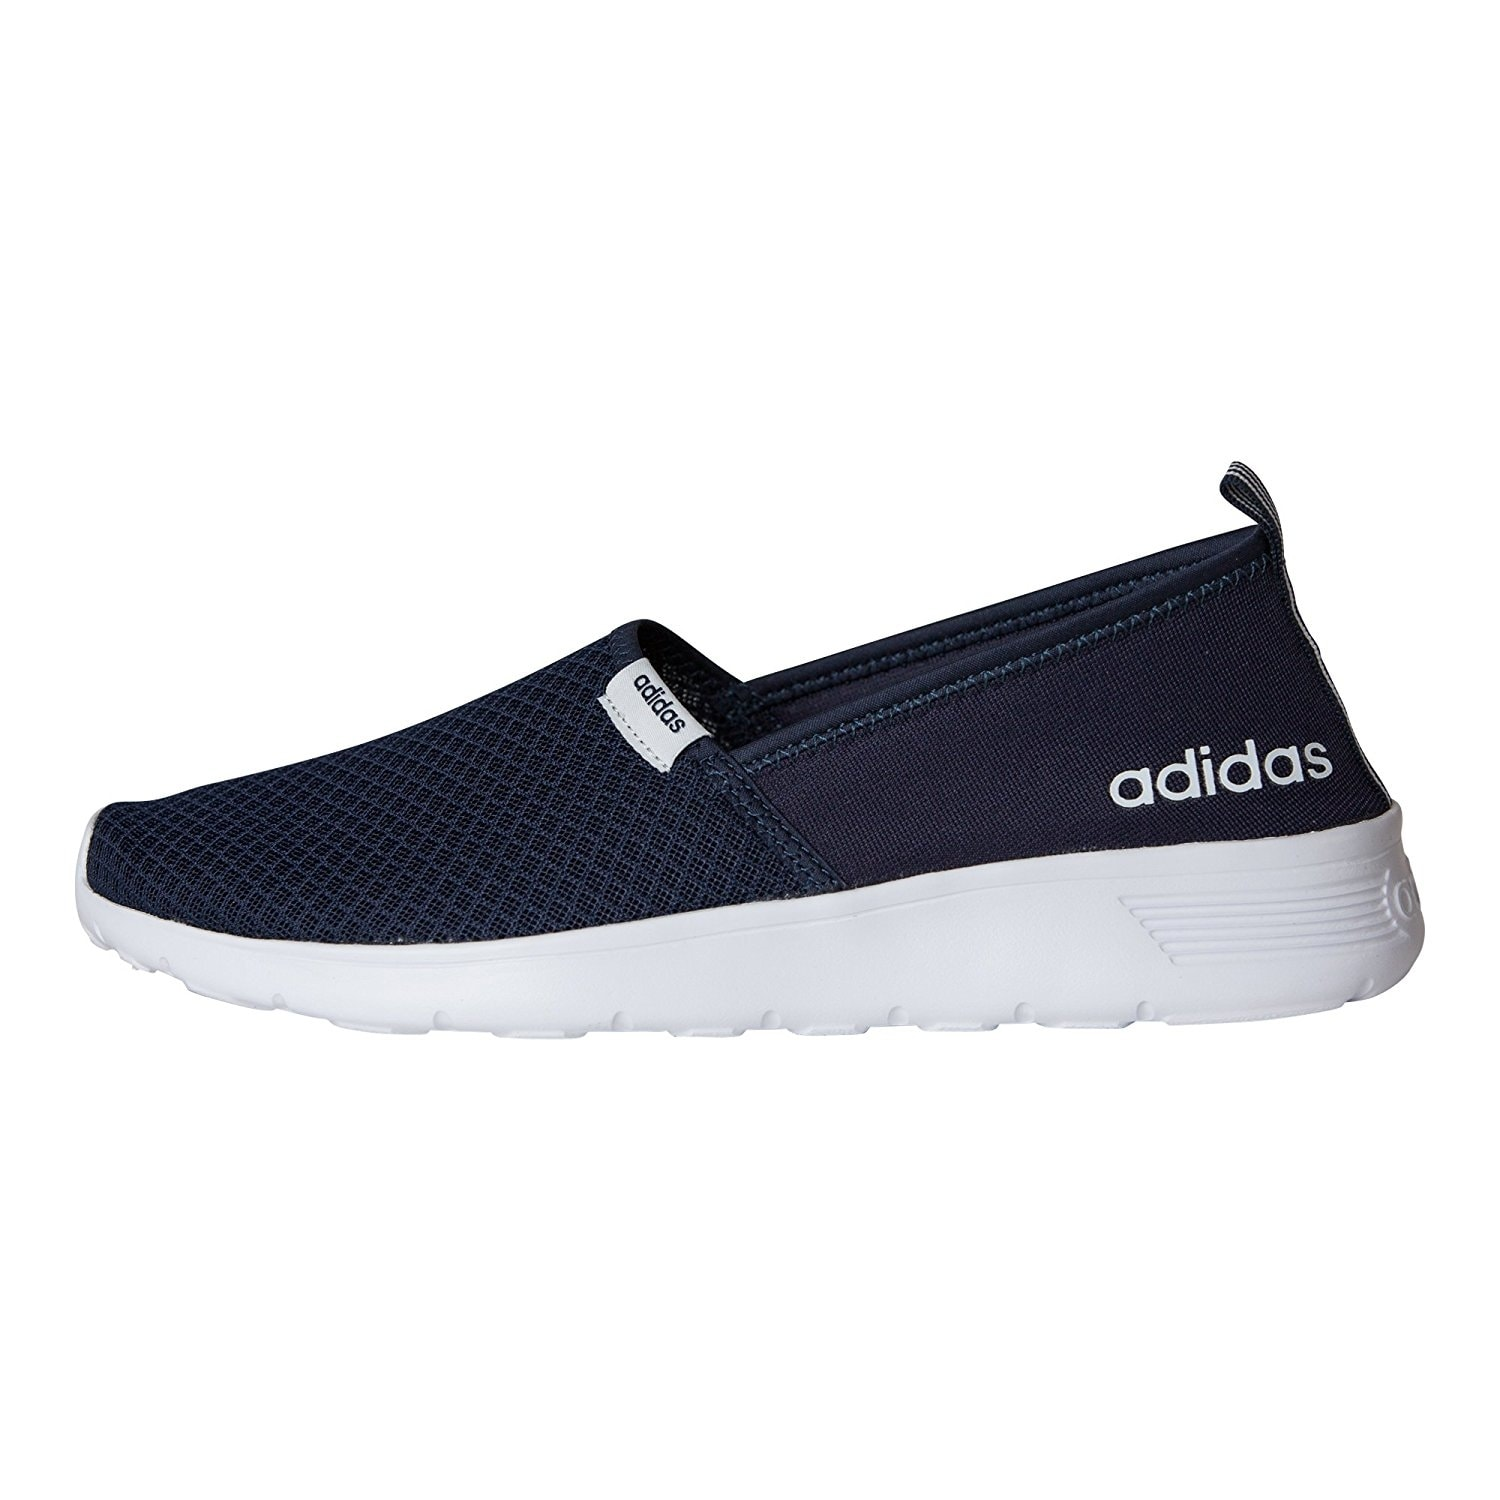 free shipping 4468c b9e10 Adidas Women Cloud Foam Extra Lite Racer Slip On Sneaker Shoes